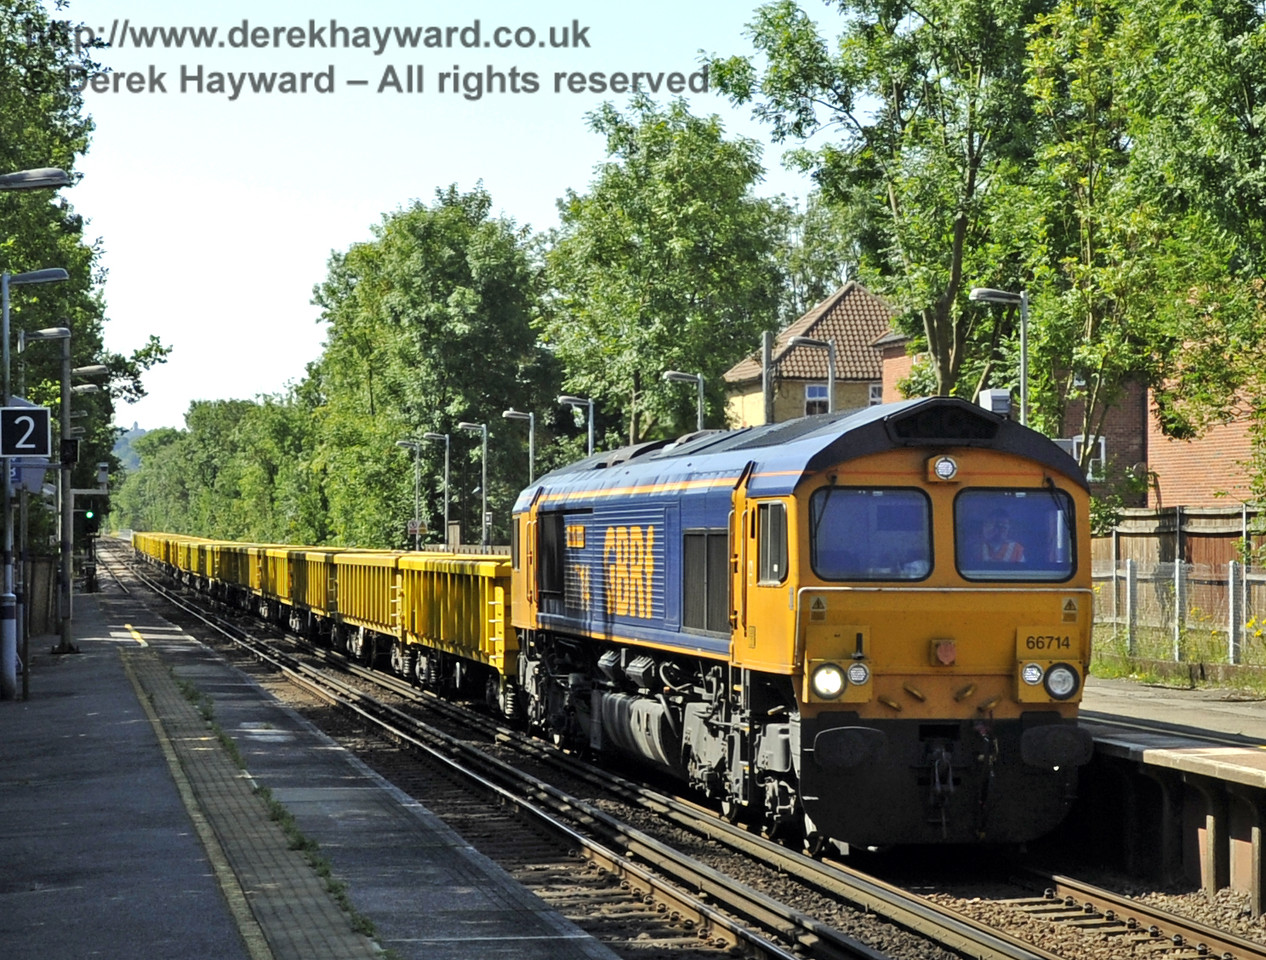 66714 hauling the empty stock of a Bluebell waste train, en route from Tonbridge Yard to East Grinstead.  The train is seen at Dunton Green Station, Kent.  04.07.2011  2223